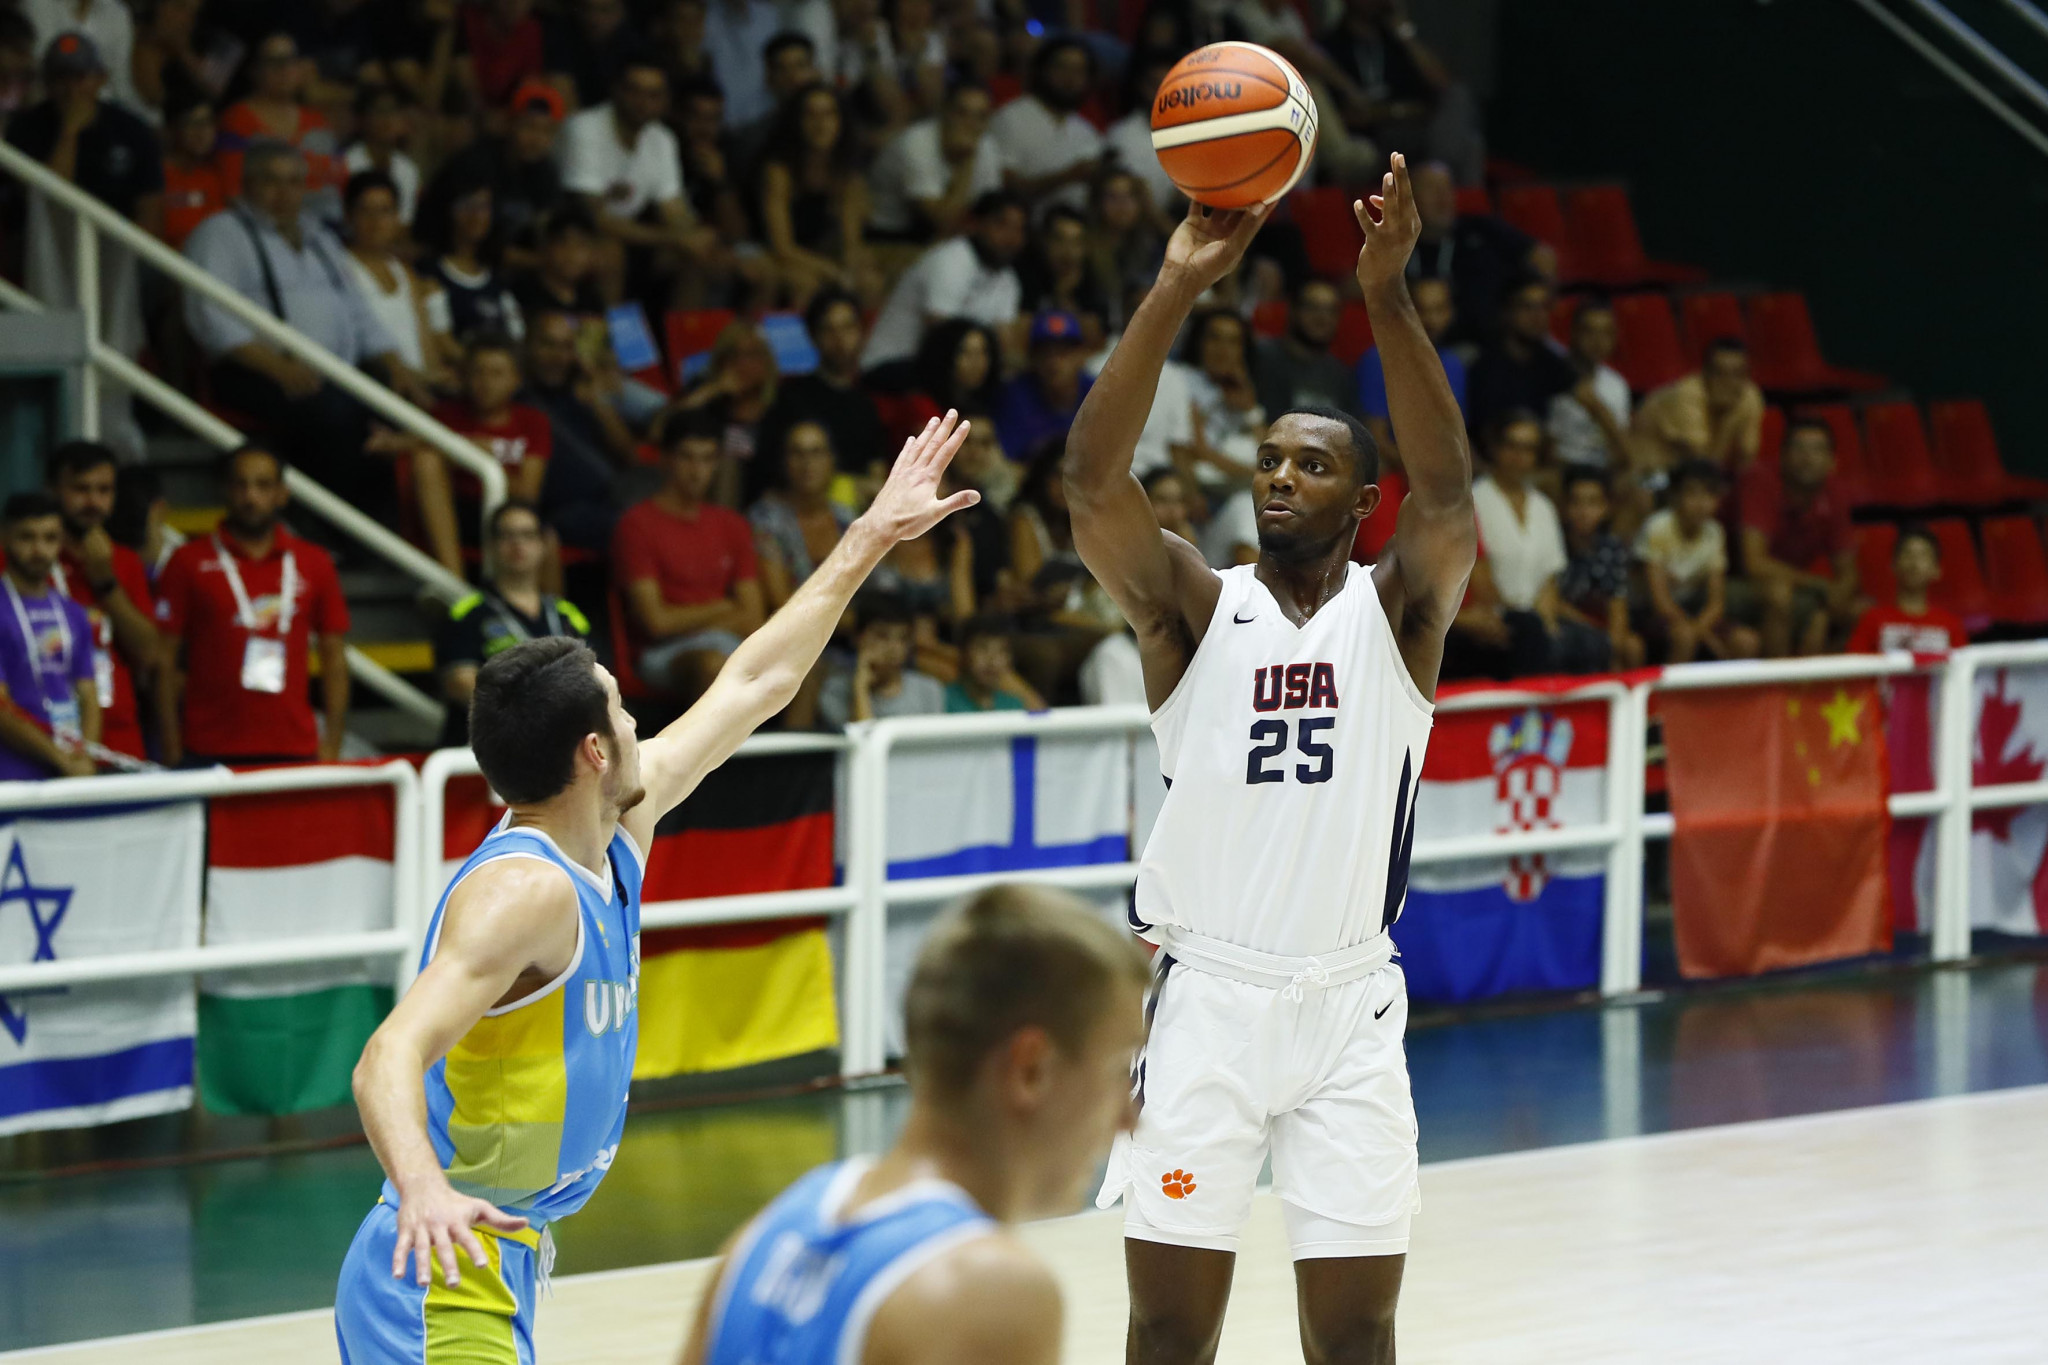 The United States took on Ukraine in the men's basketball gold medal match ©Naples 2019